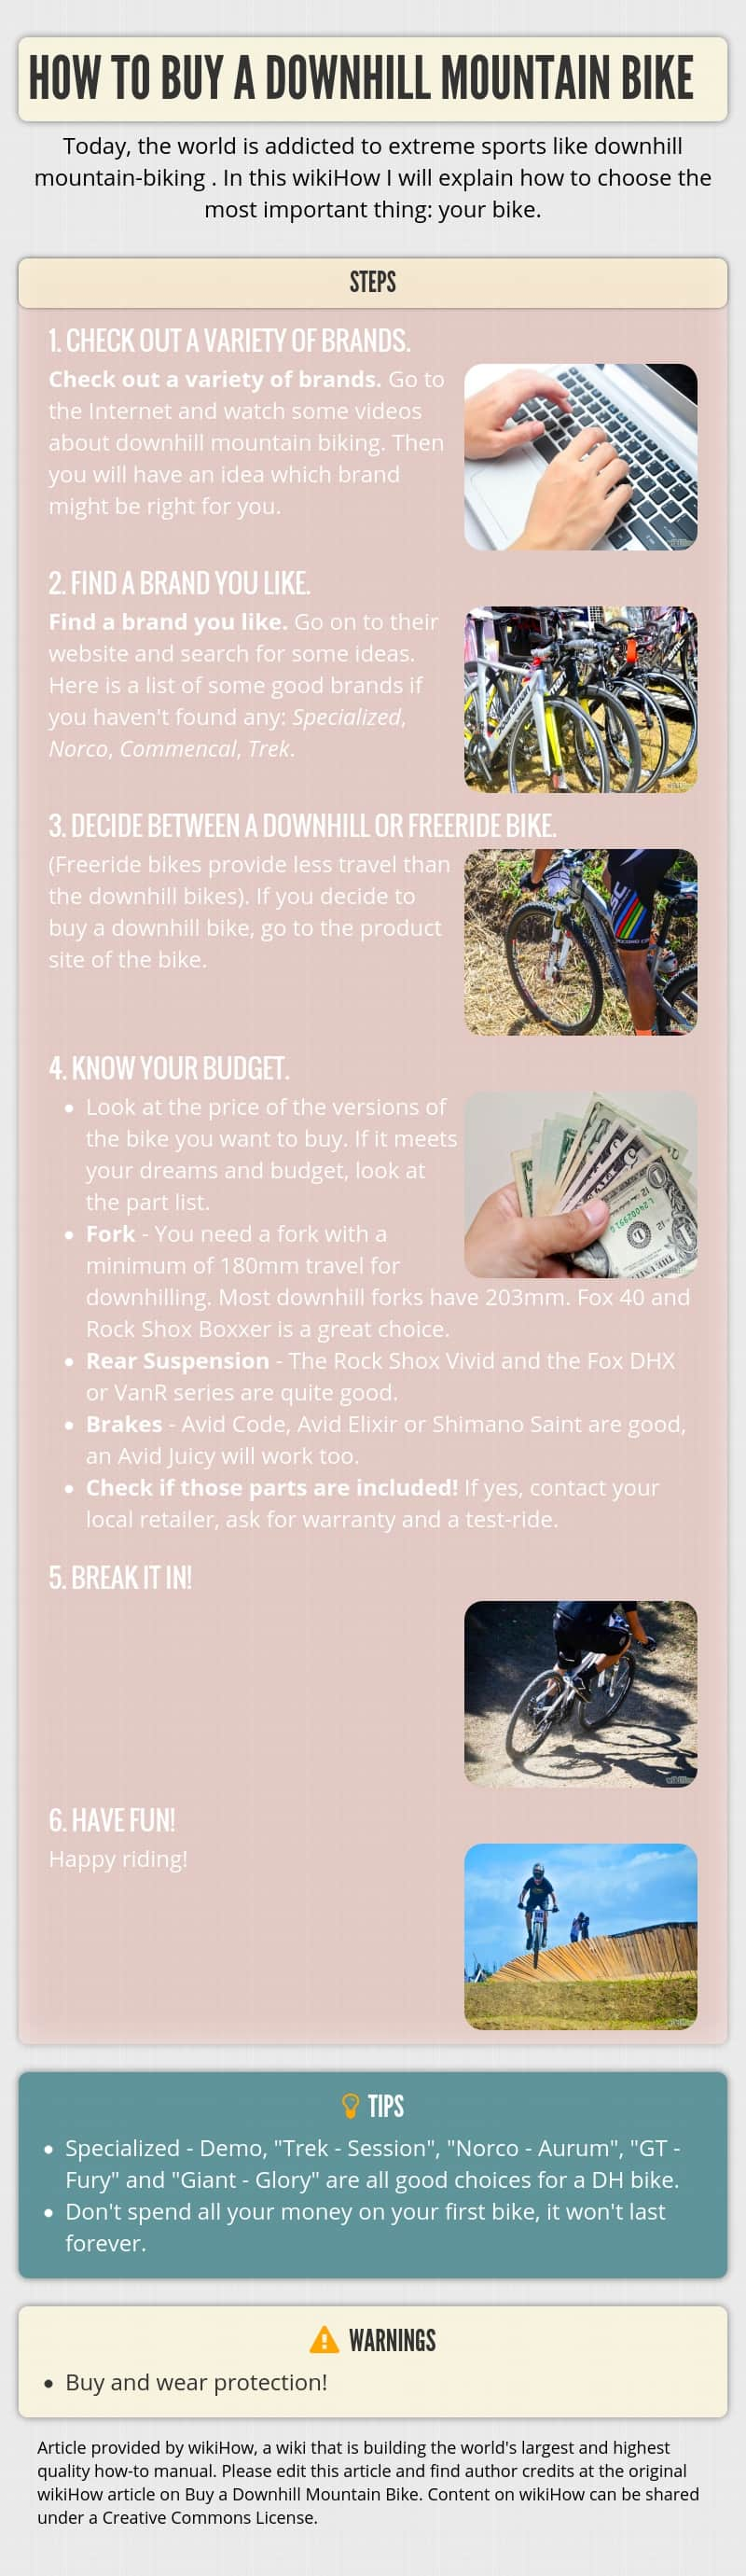 Infographic HOW TO BUY A DOWNHILL MOUNTAIN BIKE